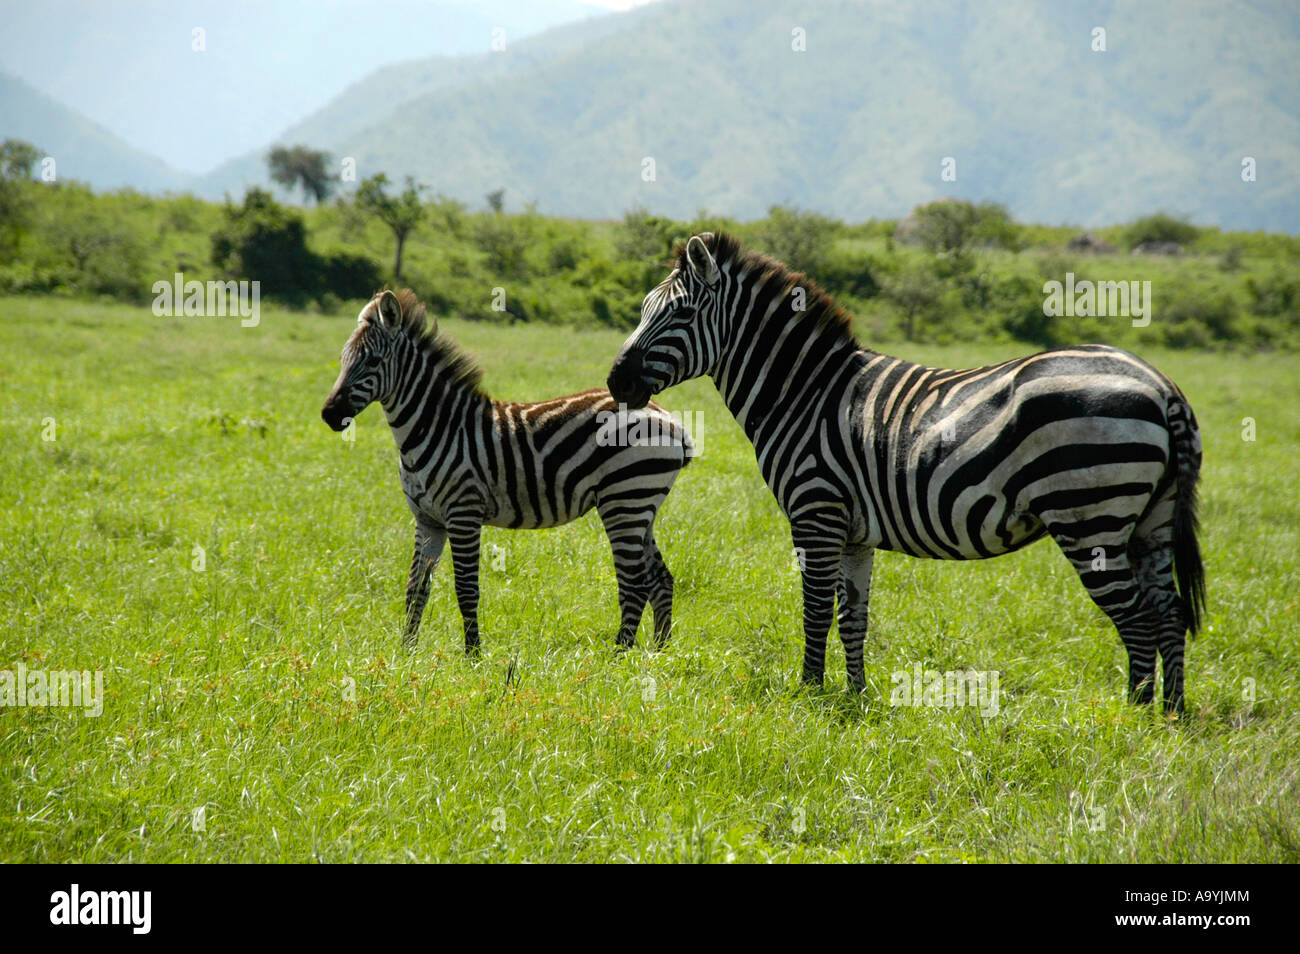 Zebras mother with her foal in the savannah Nechisar National Park near Arba Minch Ethiopia Stock Photo